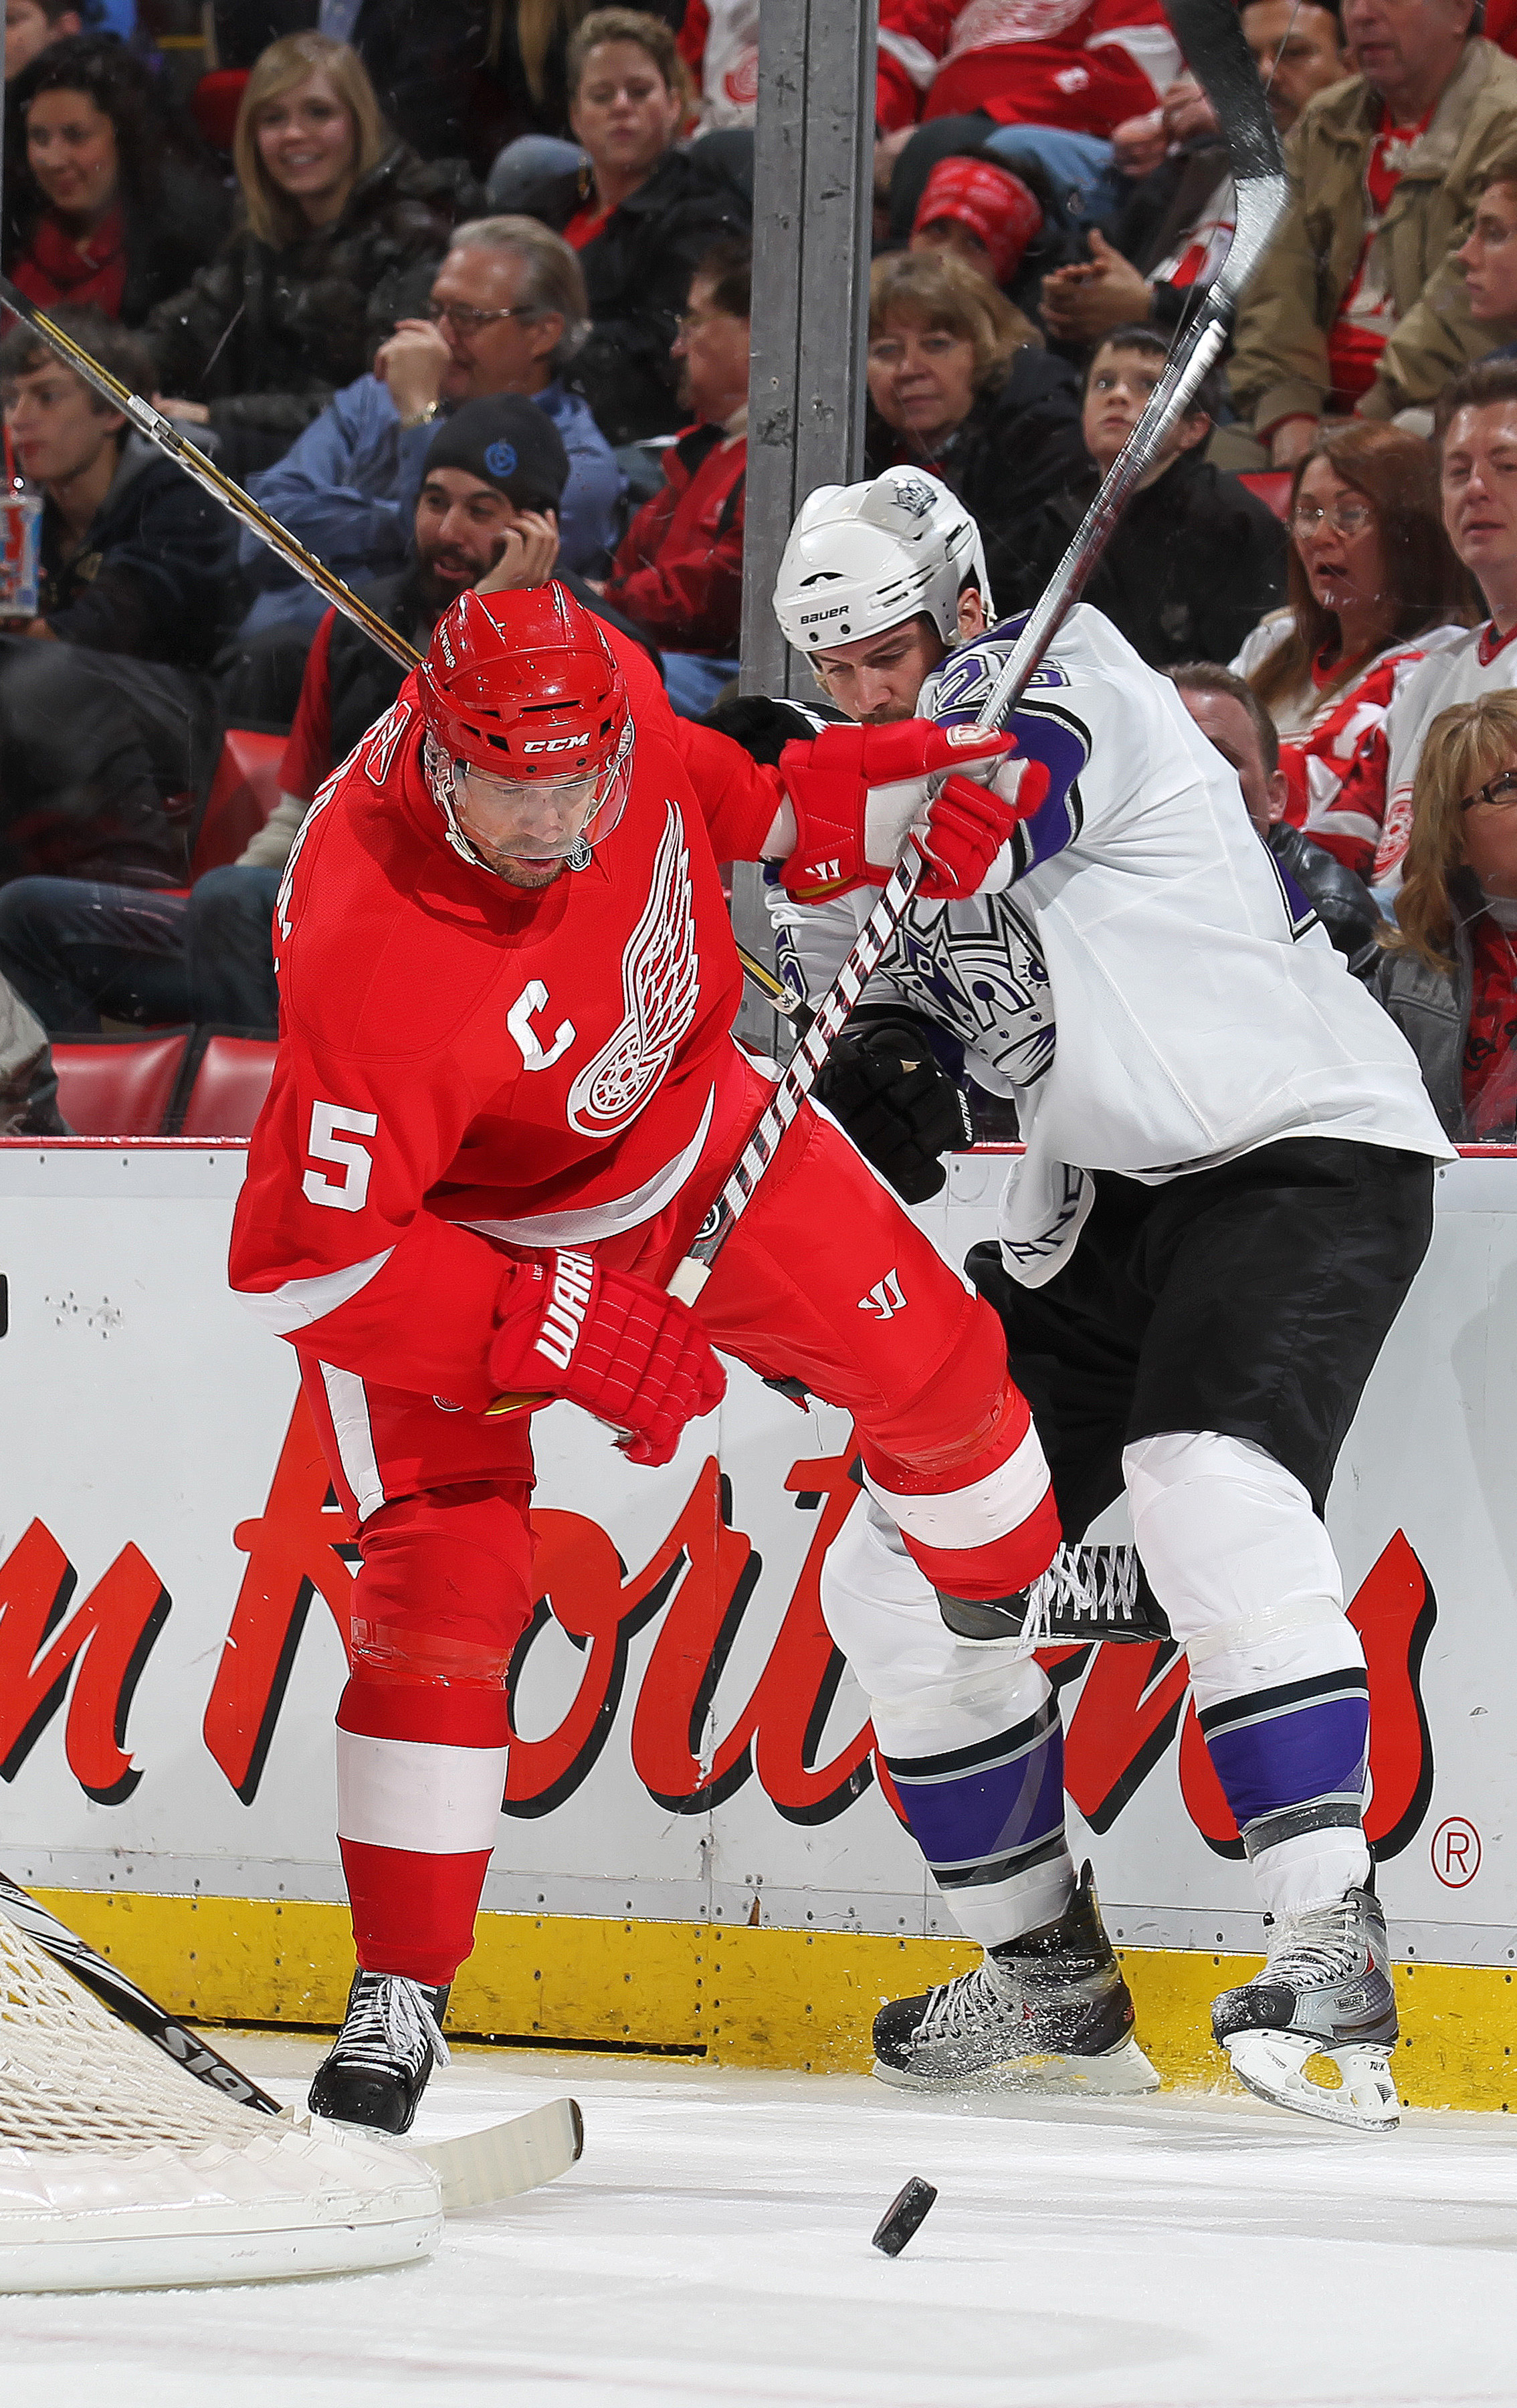 Nicklas Lidstrom, on his way to the Hockey Hall of FAme, leads another Red Wings team poised to make another run at Lord Stanley's Cup